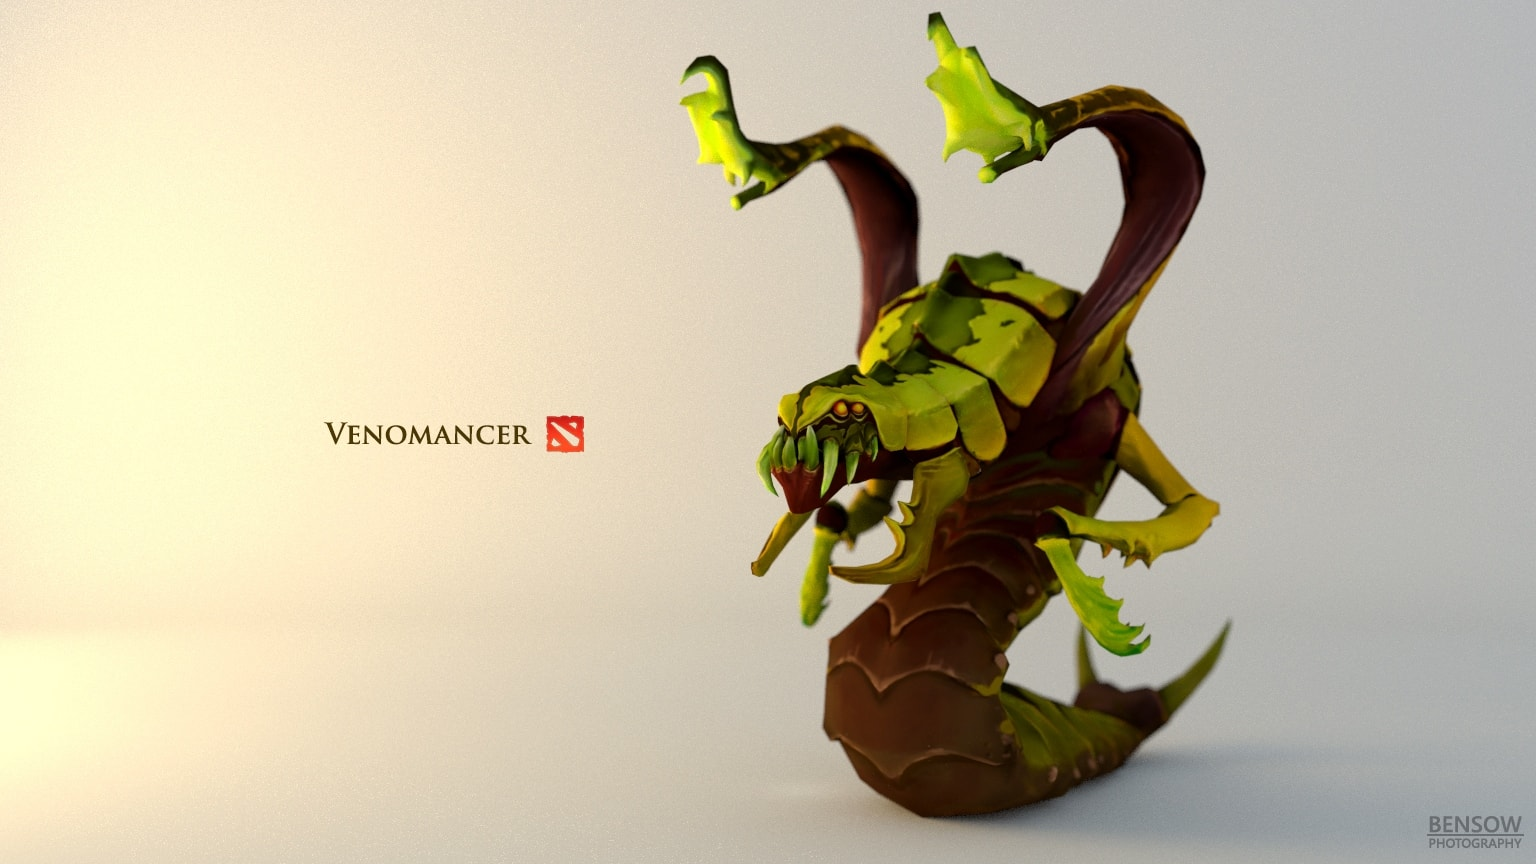 Dota2 : Venomancer HQ wallpapers